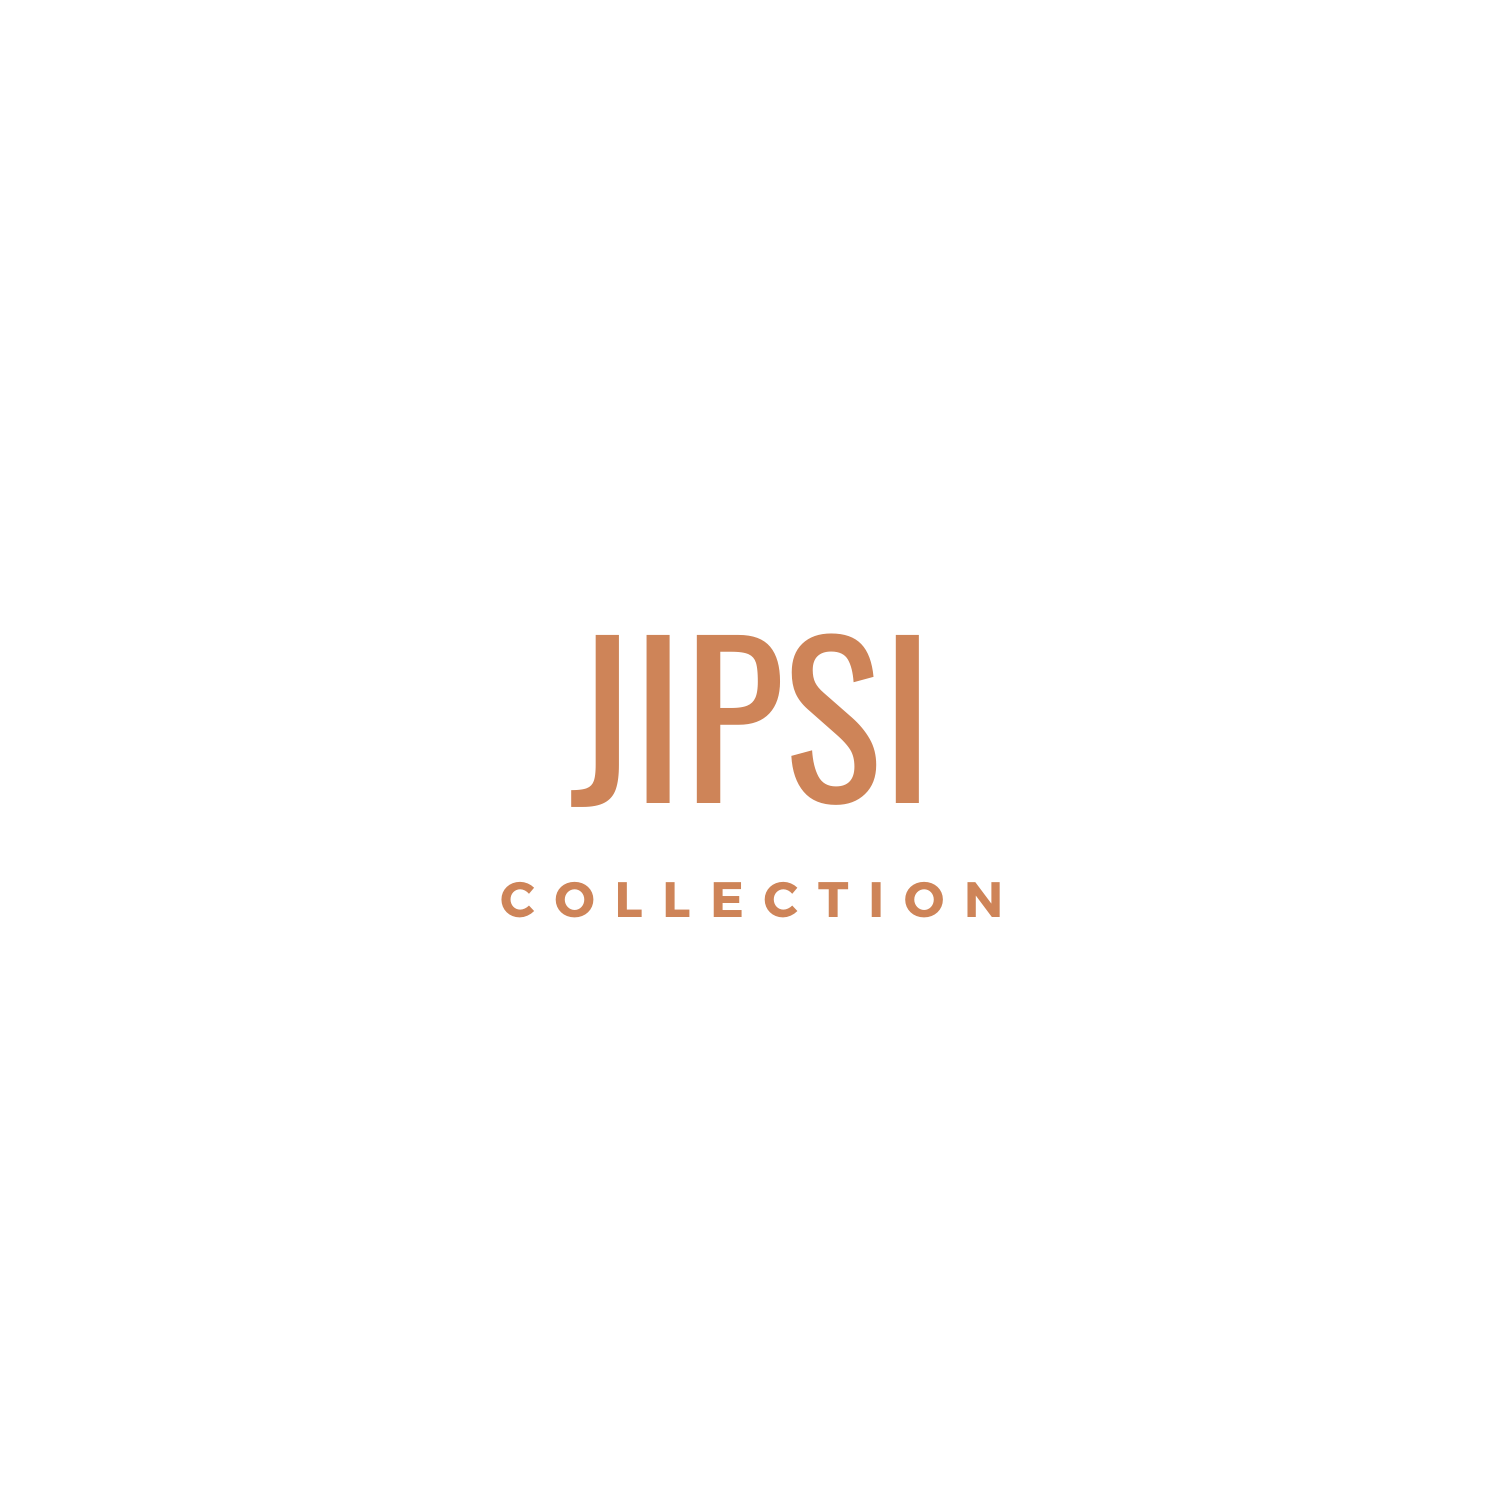 JIPSI Collection Logo